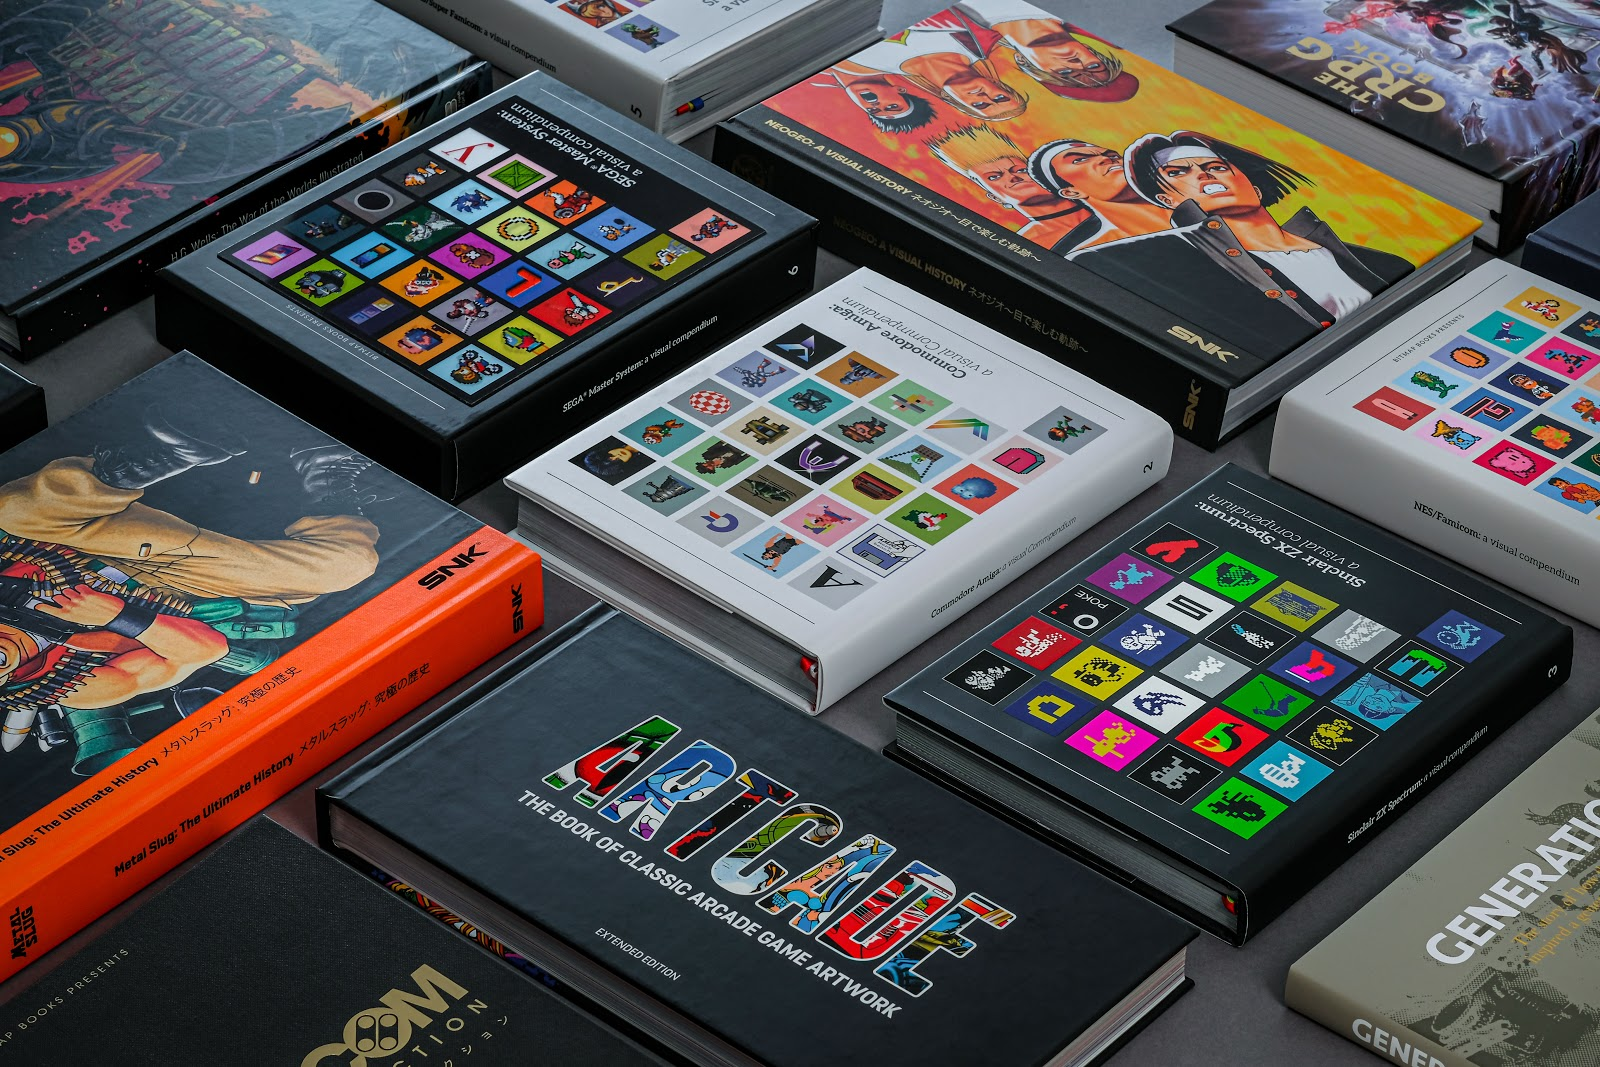 on-producing-a-retro-gaming-books-and-growing-positively